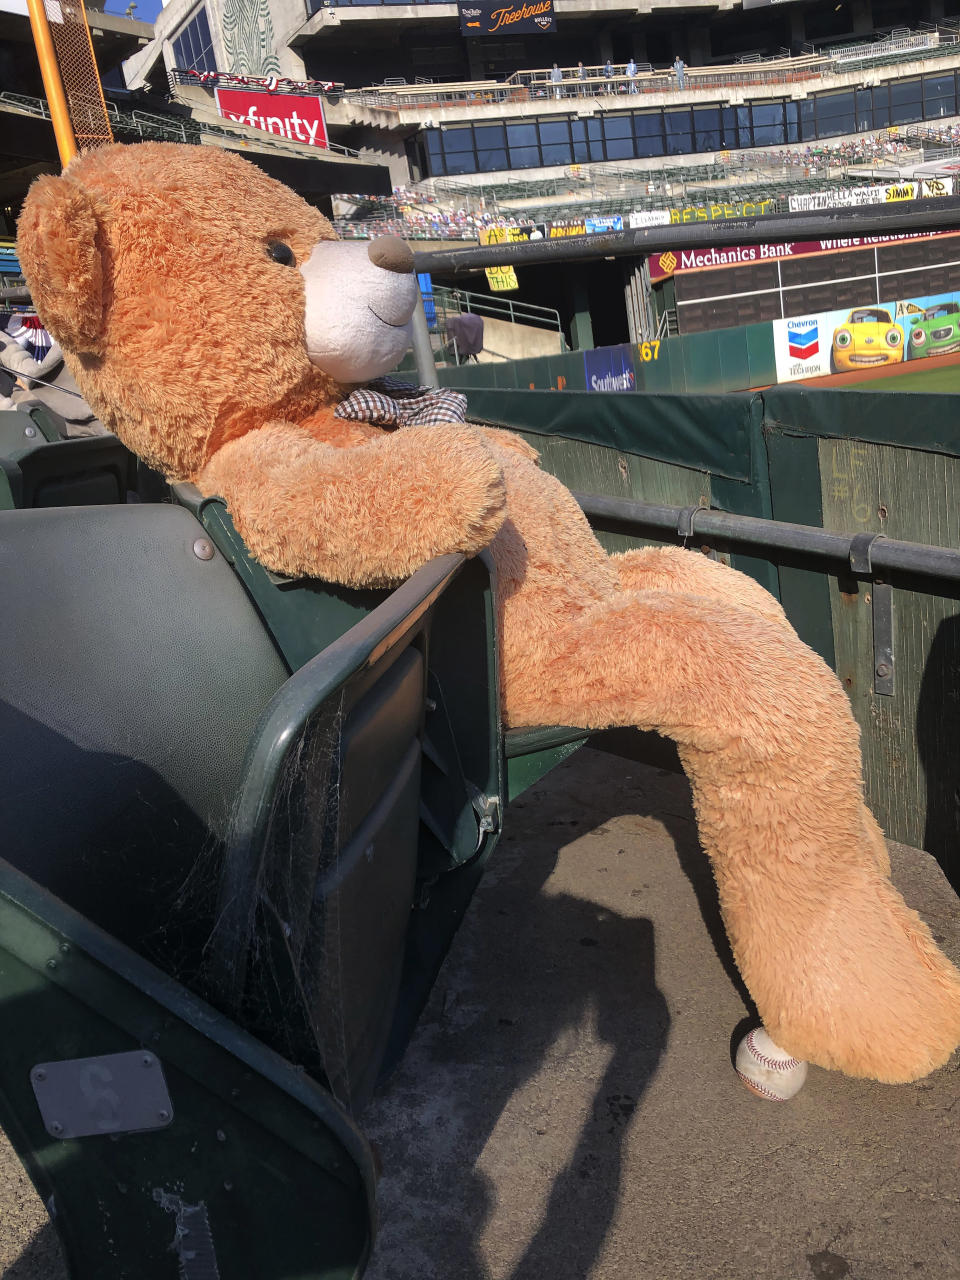 A baseball sits below a stuffed bear seated at Oakland Coliseum after Game 1 of an American League wild-card baseball series between the Oakland Athletics and the Chicago White Sox, Tuesday, Sept. 29, 2020, in Oakland, Calif. (AP Photo/Janie McCauley)